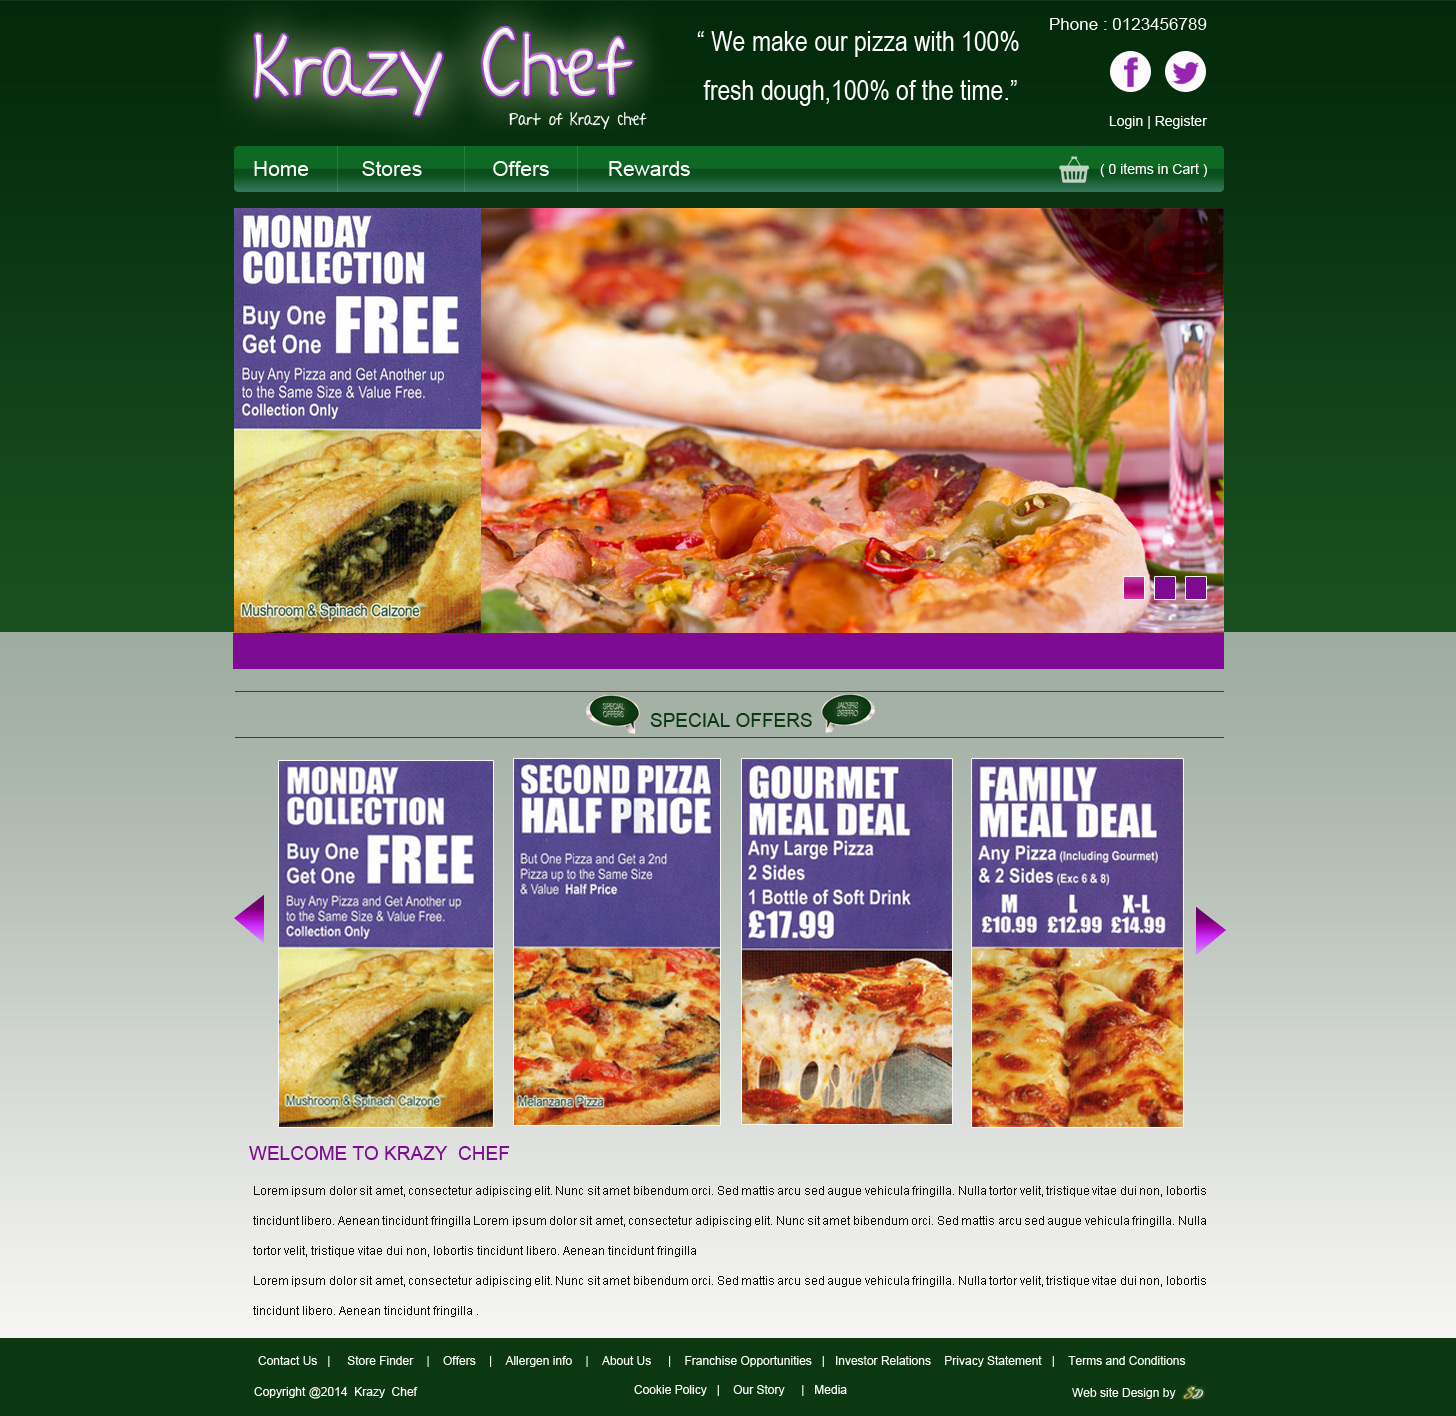 Krazy Chef, Takeaway Website, Takeaway Website Design, Fast Food Website, Fast Food Website Design